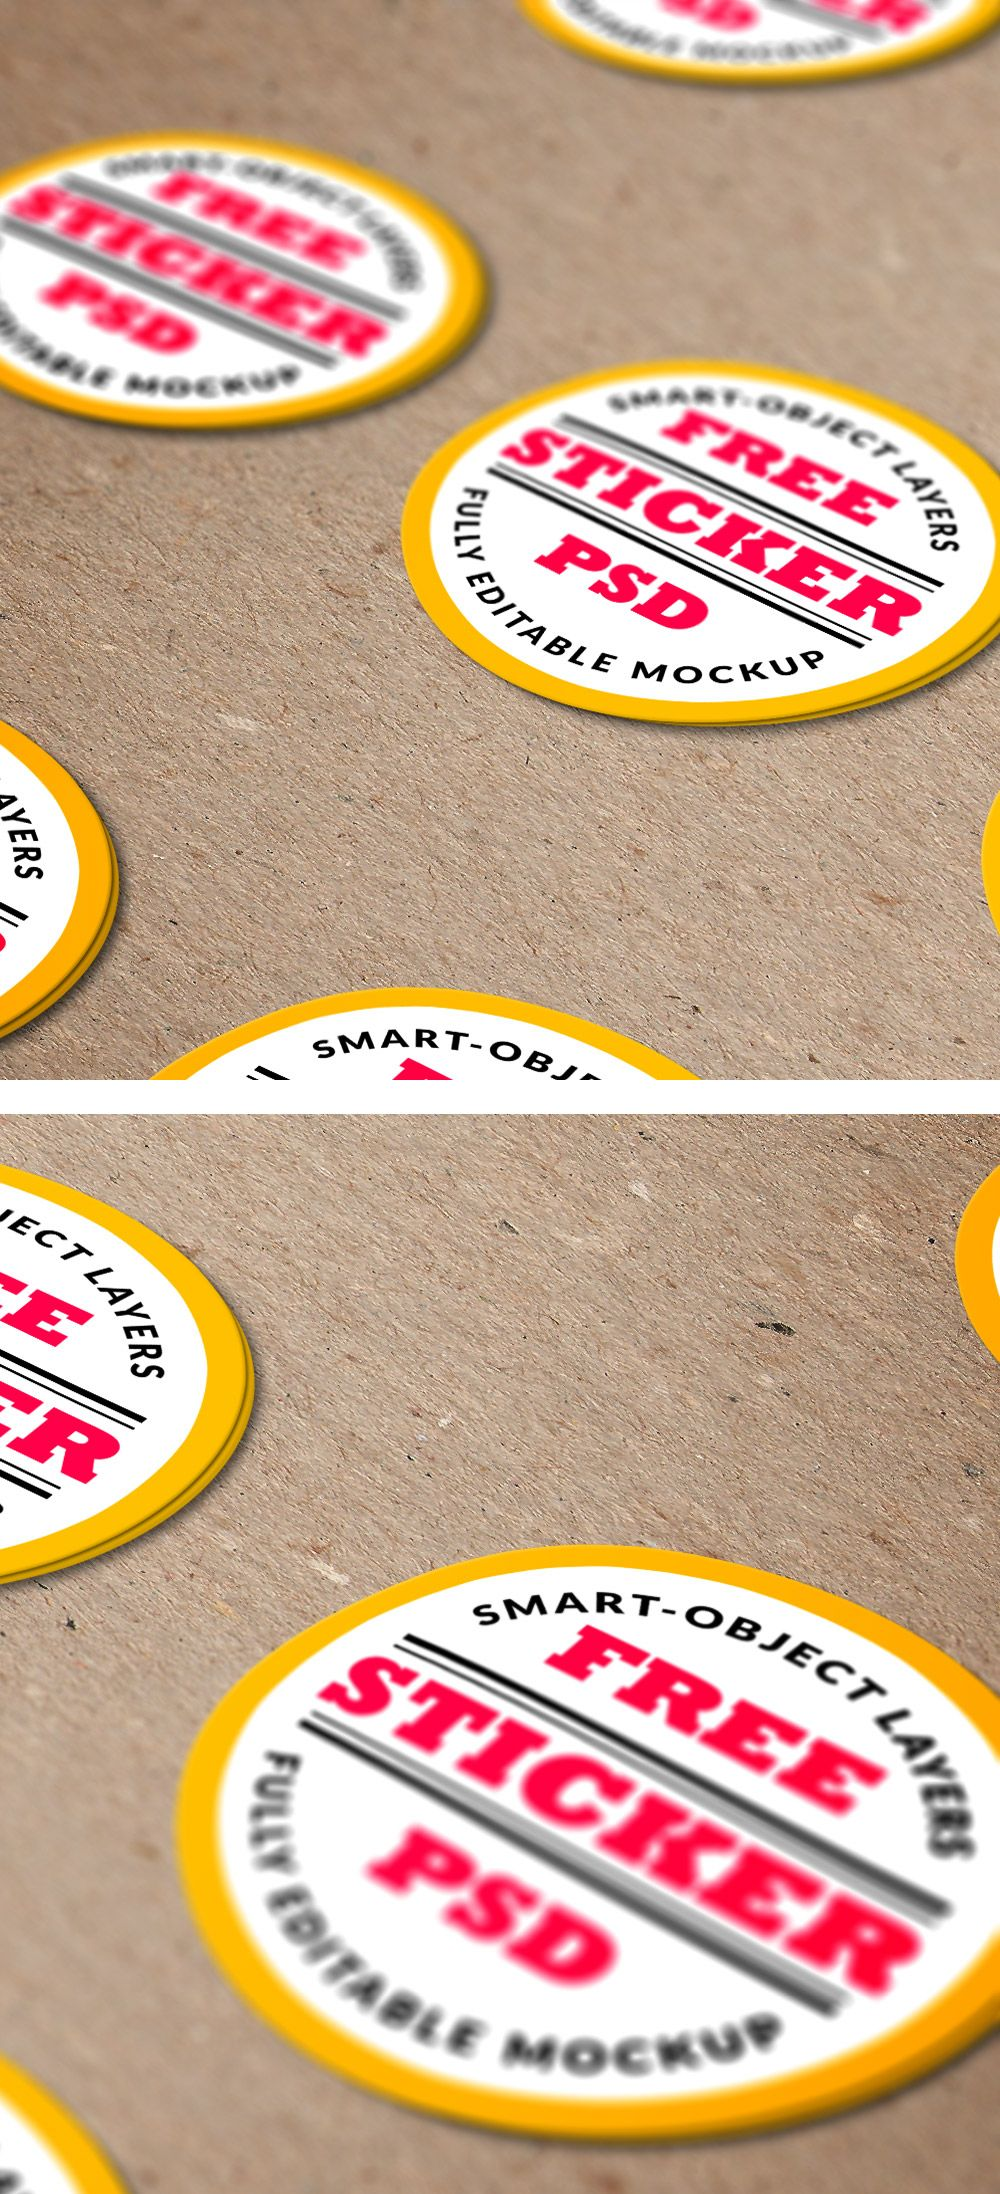 Download Stickers Mockup Psd Graphicsfuel Free Logo Mockup Graphic Design Mockup Mockup